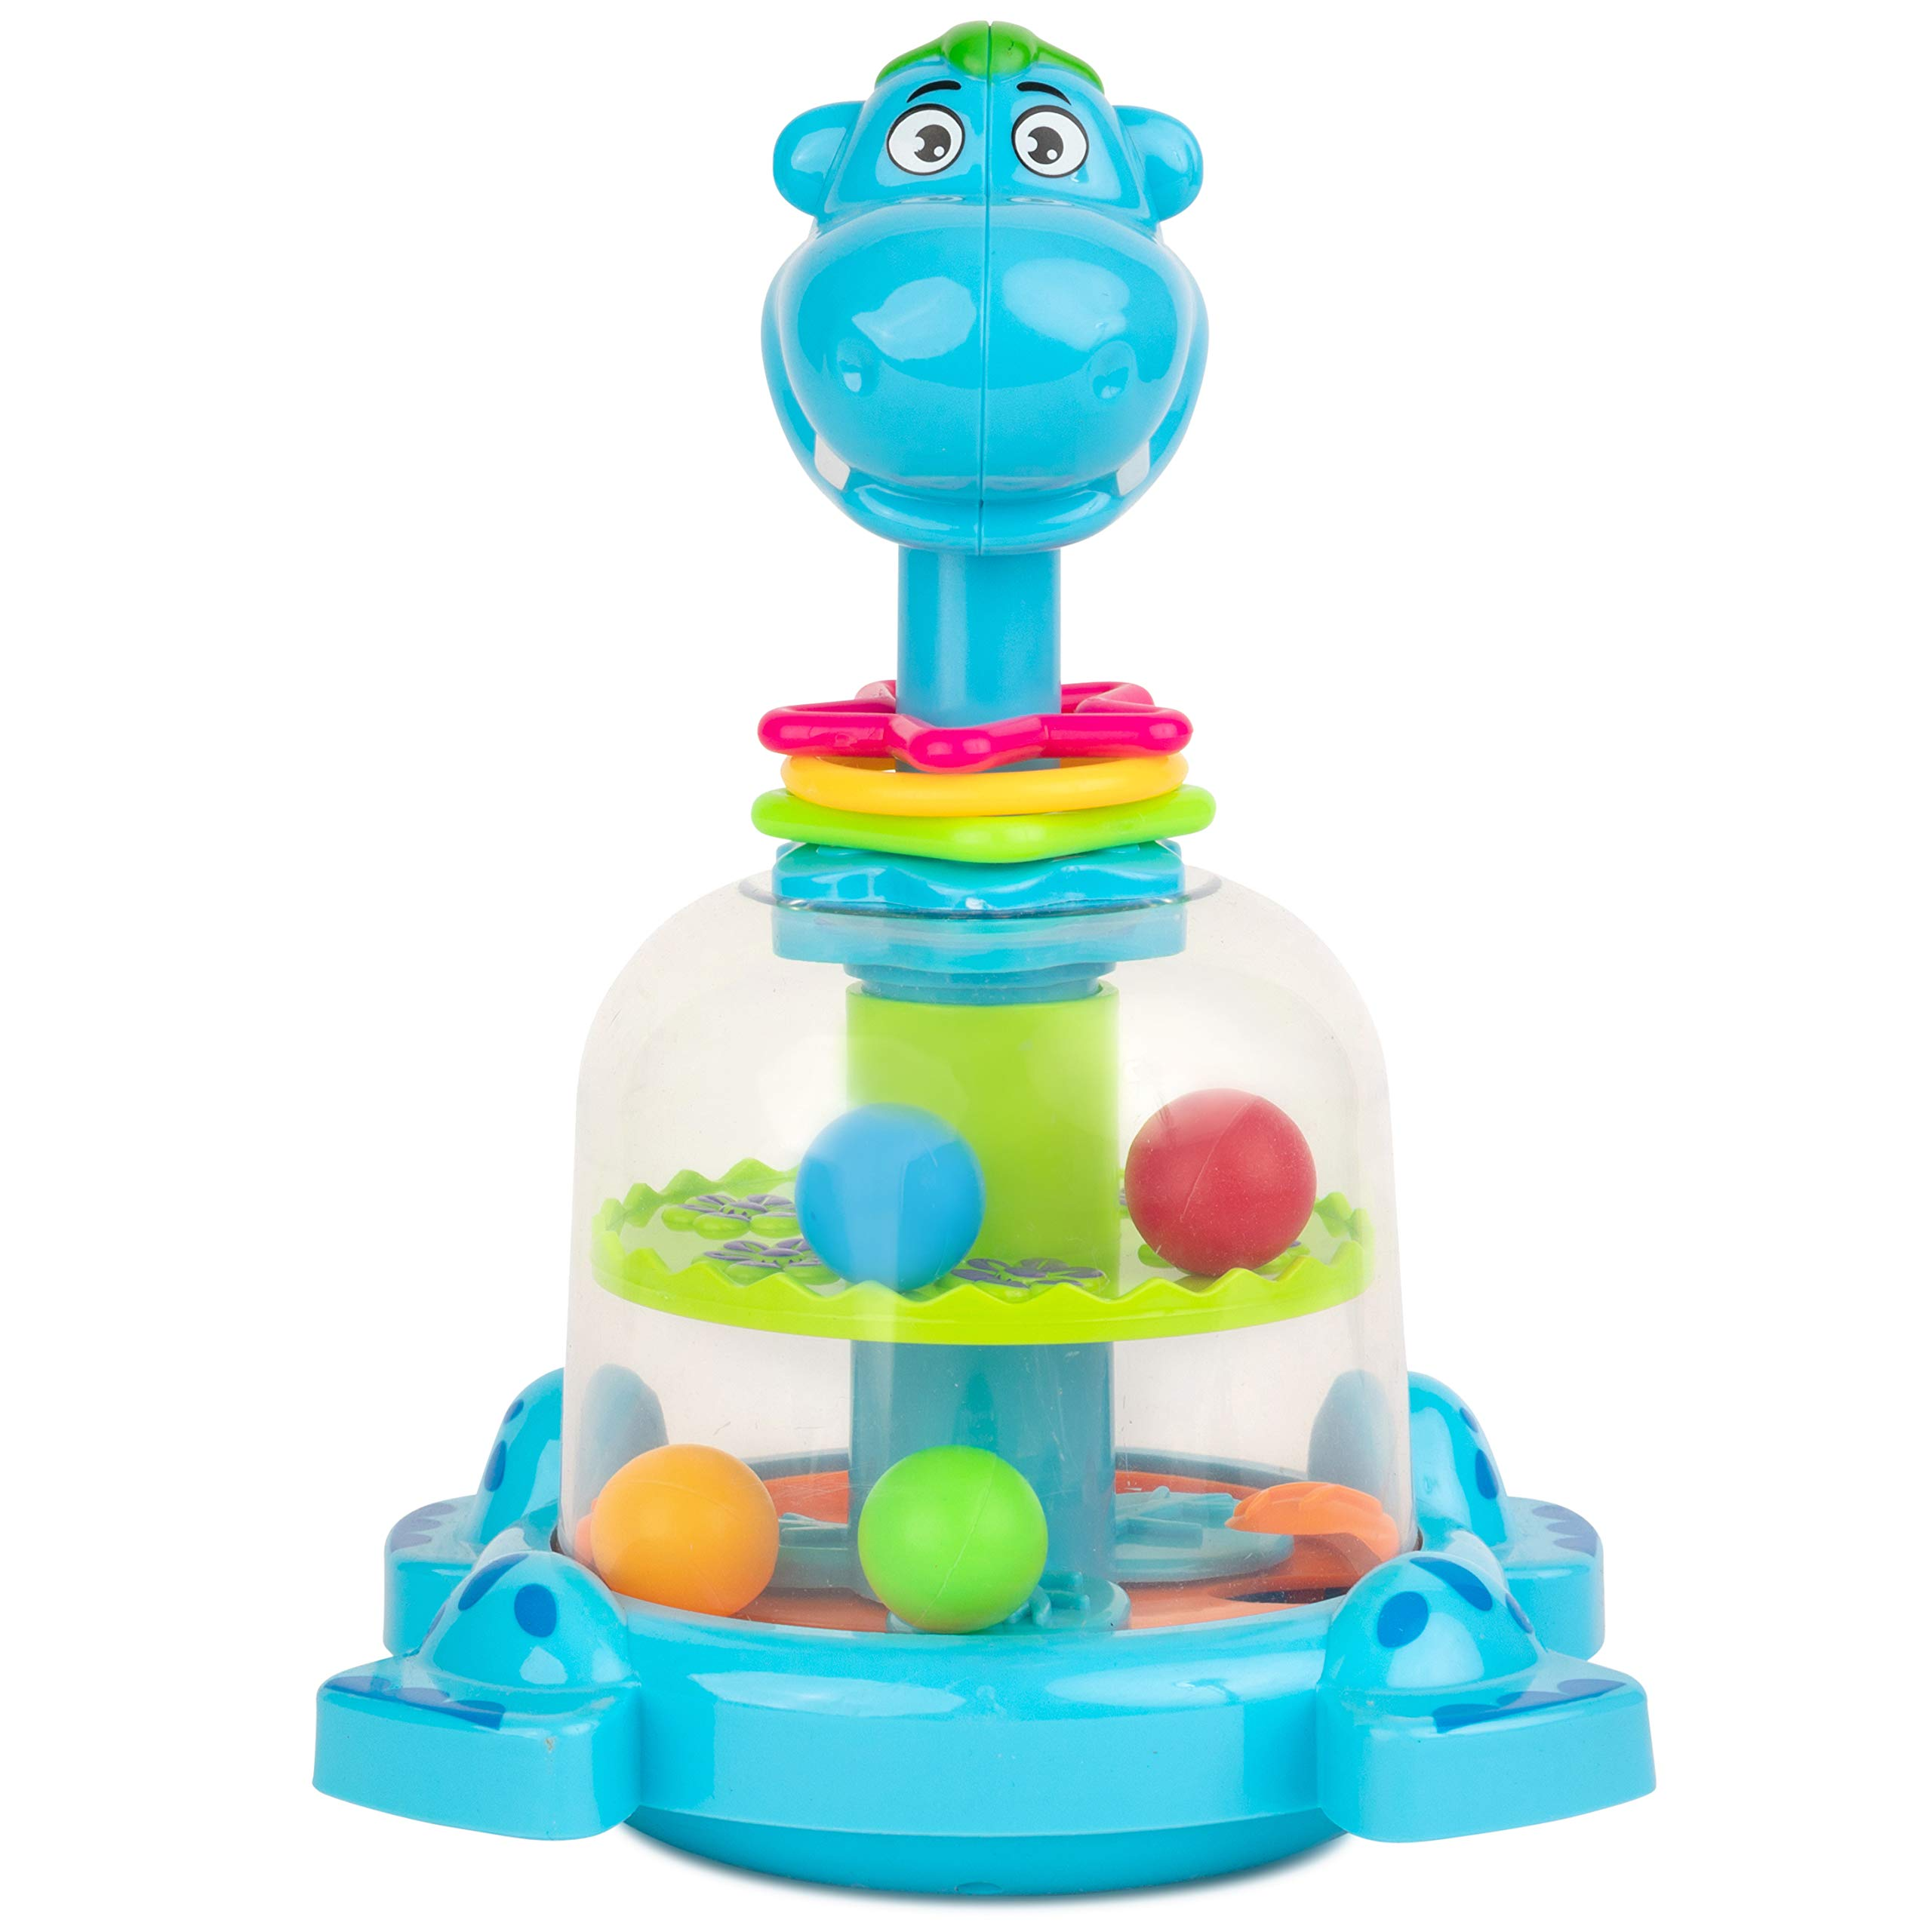 Toy To Enjoy Push & Spin Hippo Toy - Easy Press Button Ideal for Fine Motor Skill Development and Learning Activity - Great for Infants Toddlers 12 Months and Up